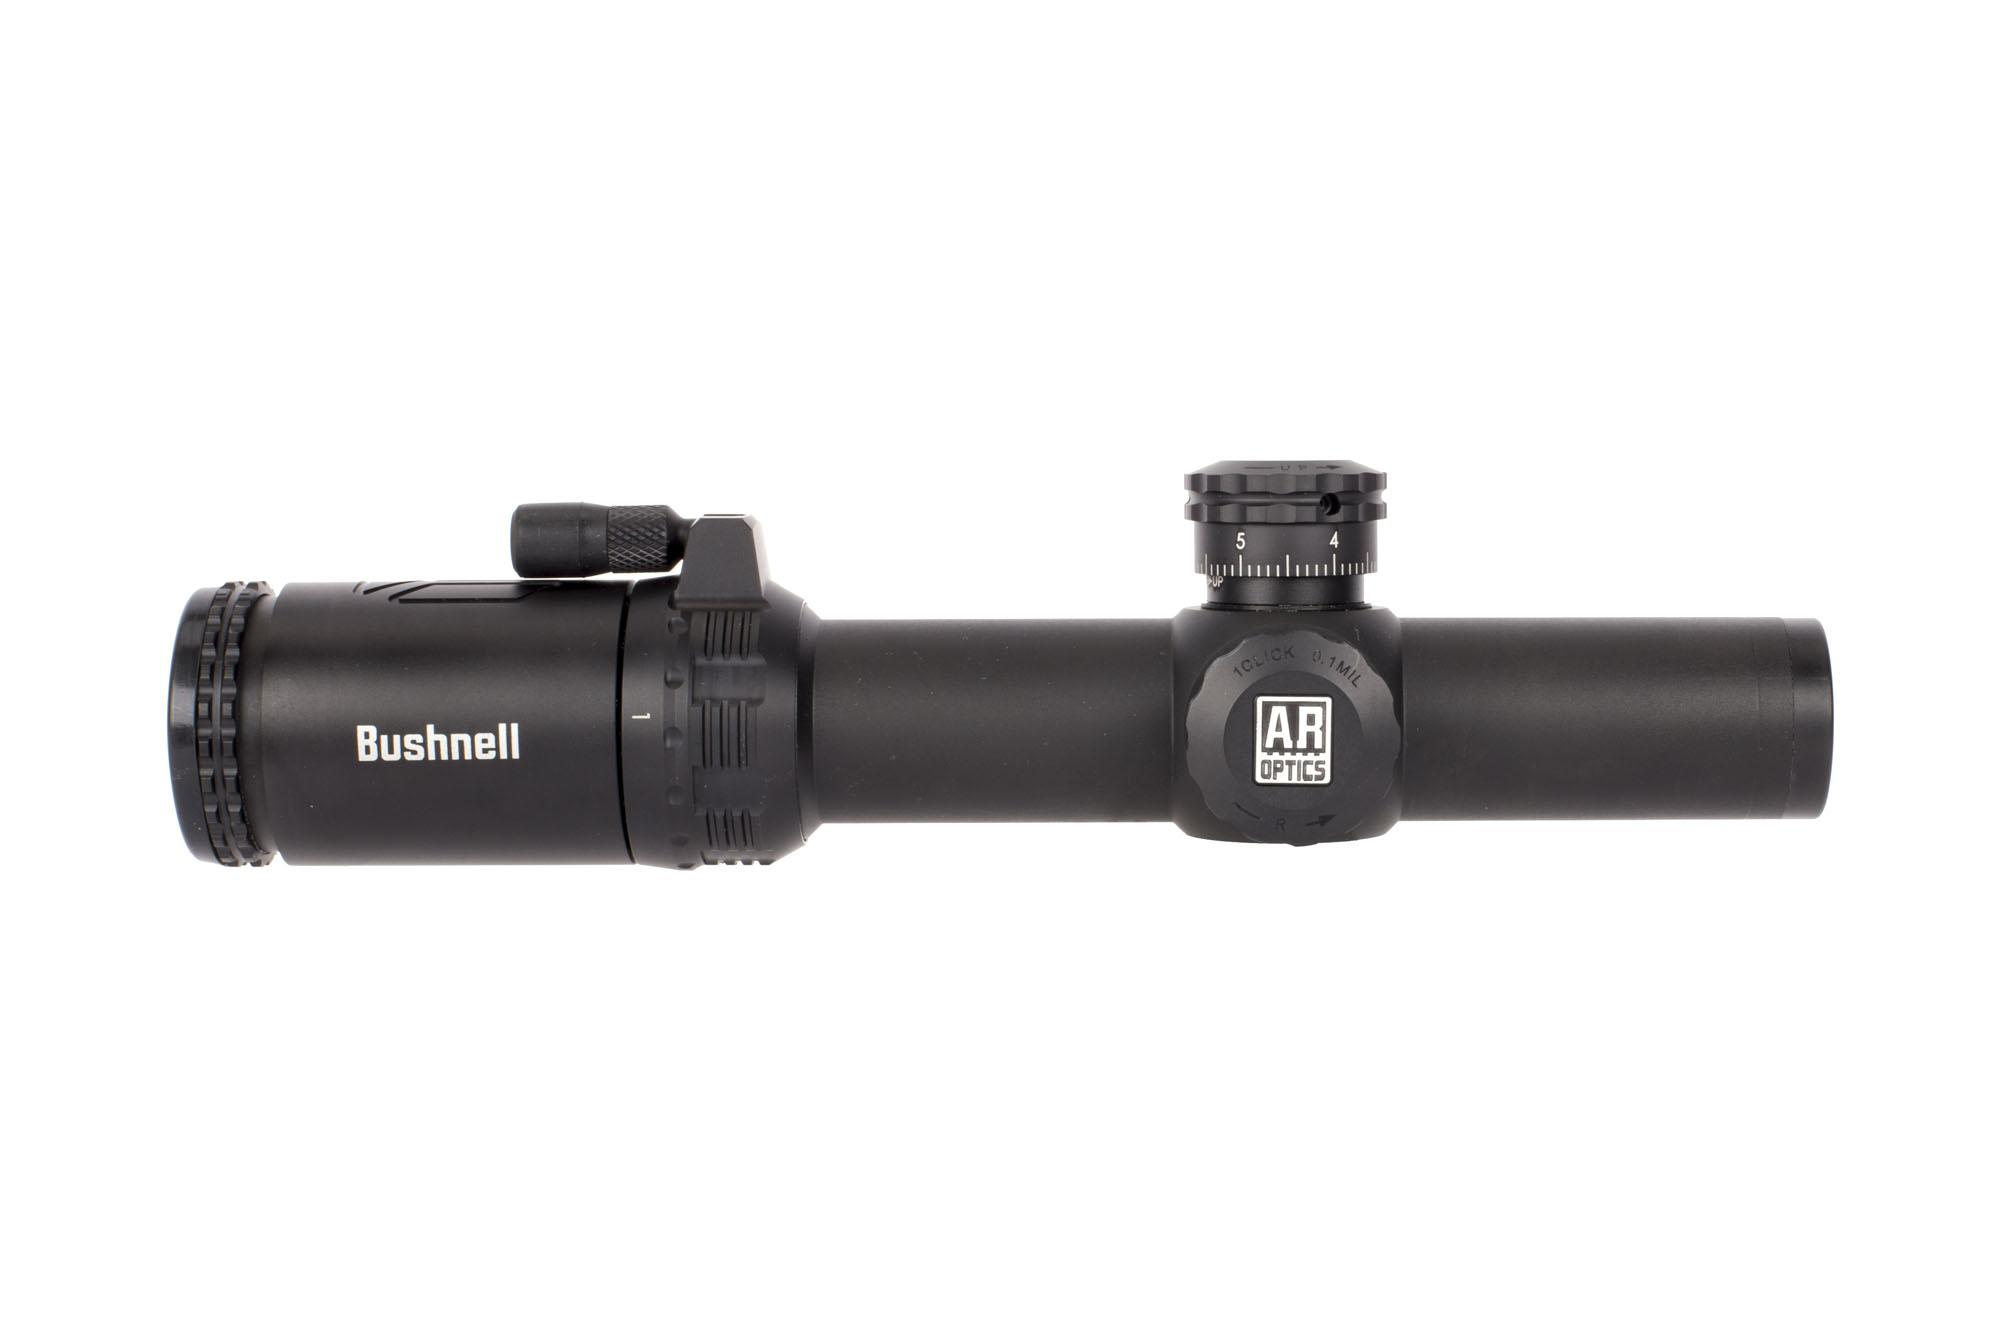 Bushnell AR Optics 1-4x24mm Riflescope - BTR-2 Reticle